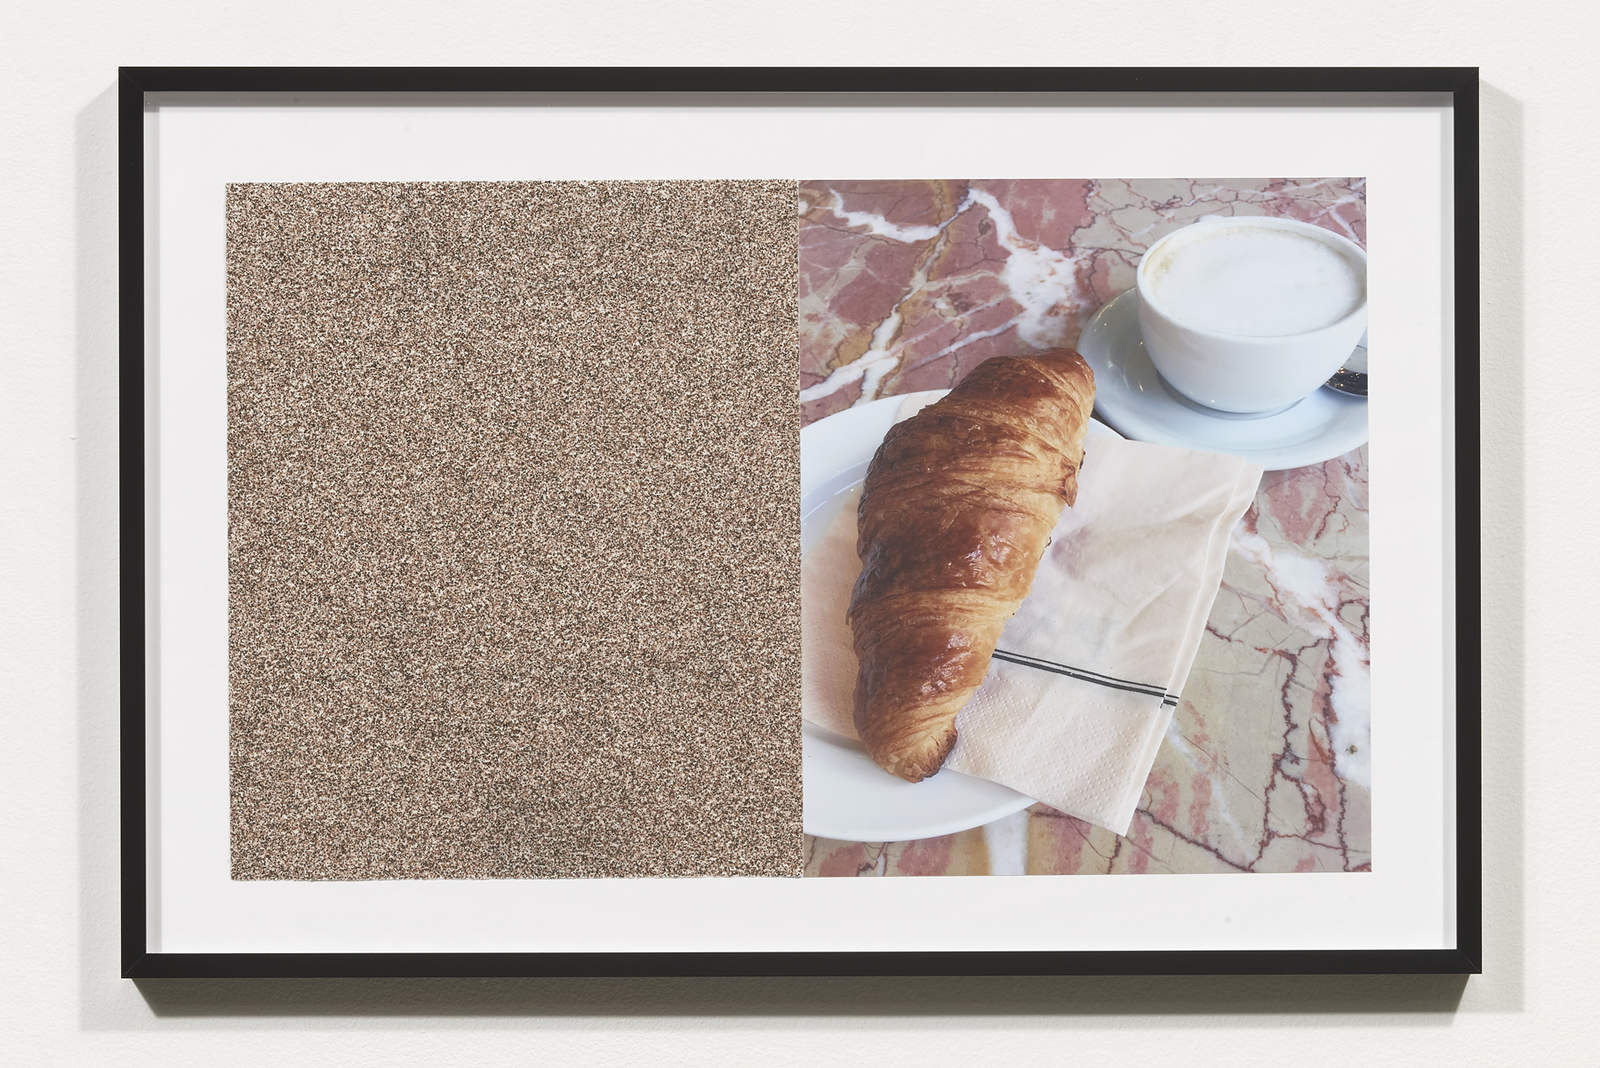 Wermers_Croissants & Architecture #1, 2016_C-print, sandpaper sheet, framed_14 3_8 x 21 1_2 in_NW0004PG